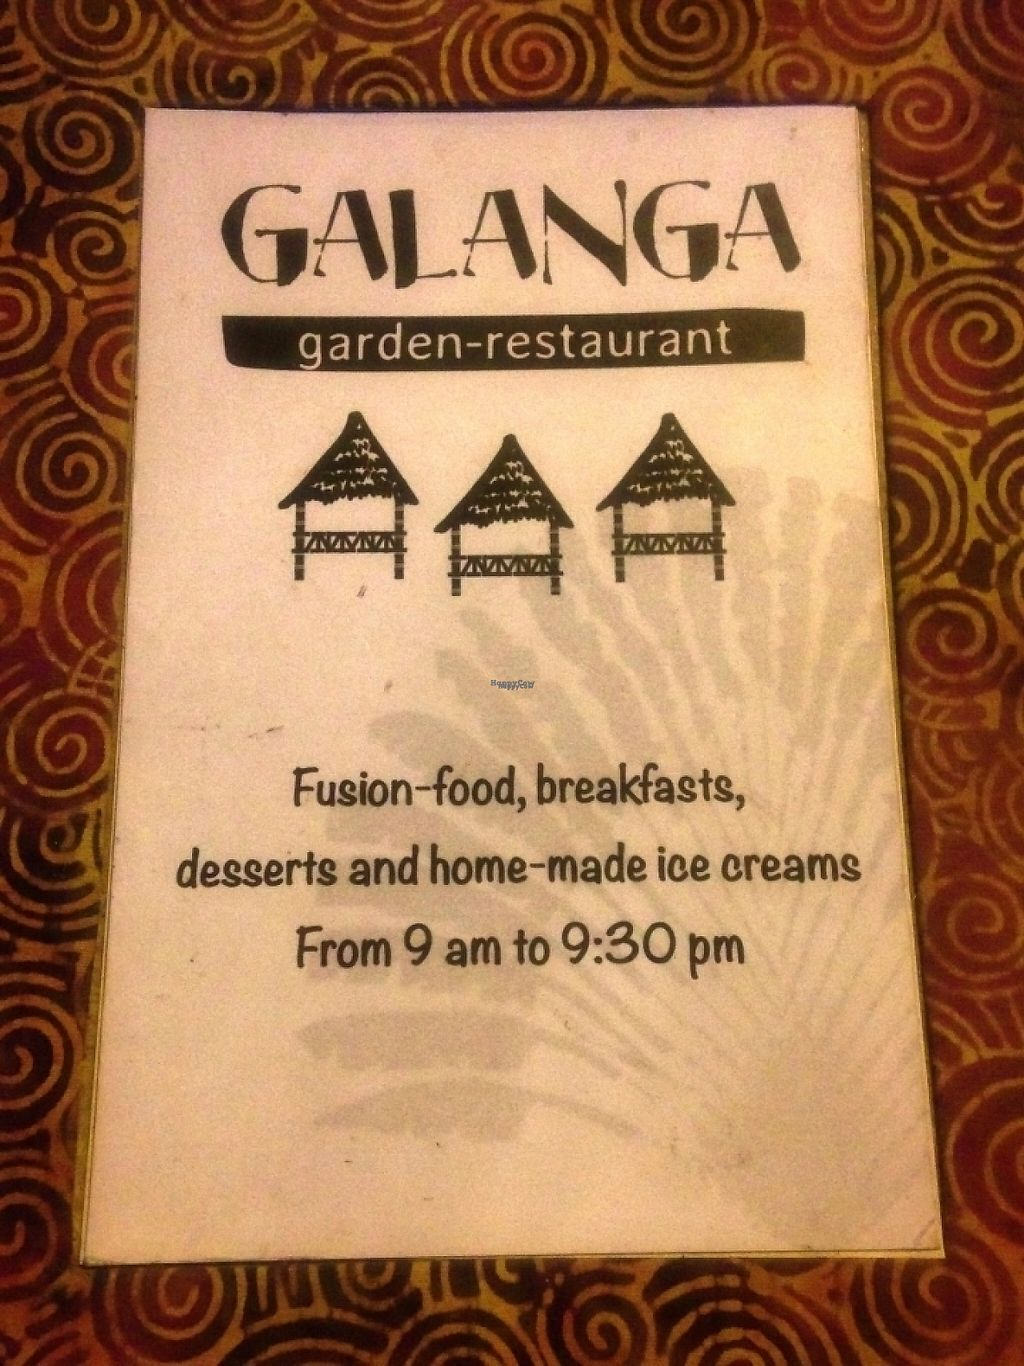 """Photo of Galanga  by <a href=""""/members/profile/becx.ray"""">becx.ray</a> <br/>Menu is also available in français <br/> January 31, 2017  - <a href='/contact/abuse/image/86237/220134'>Report</a>"""